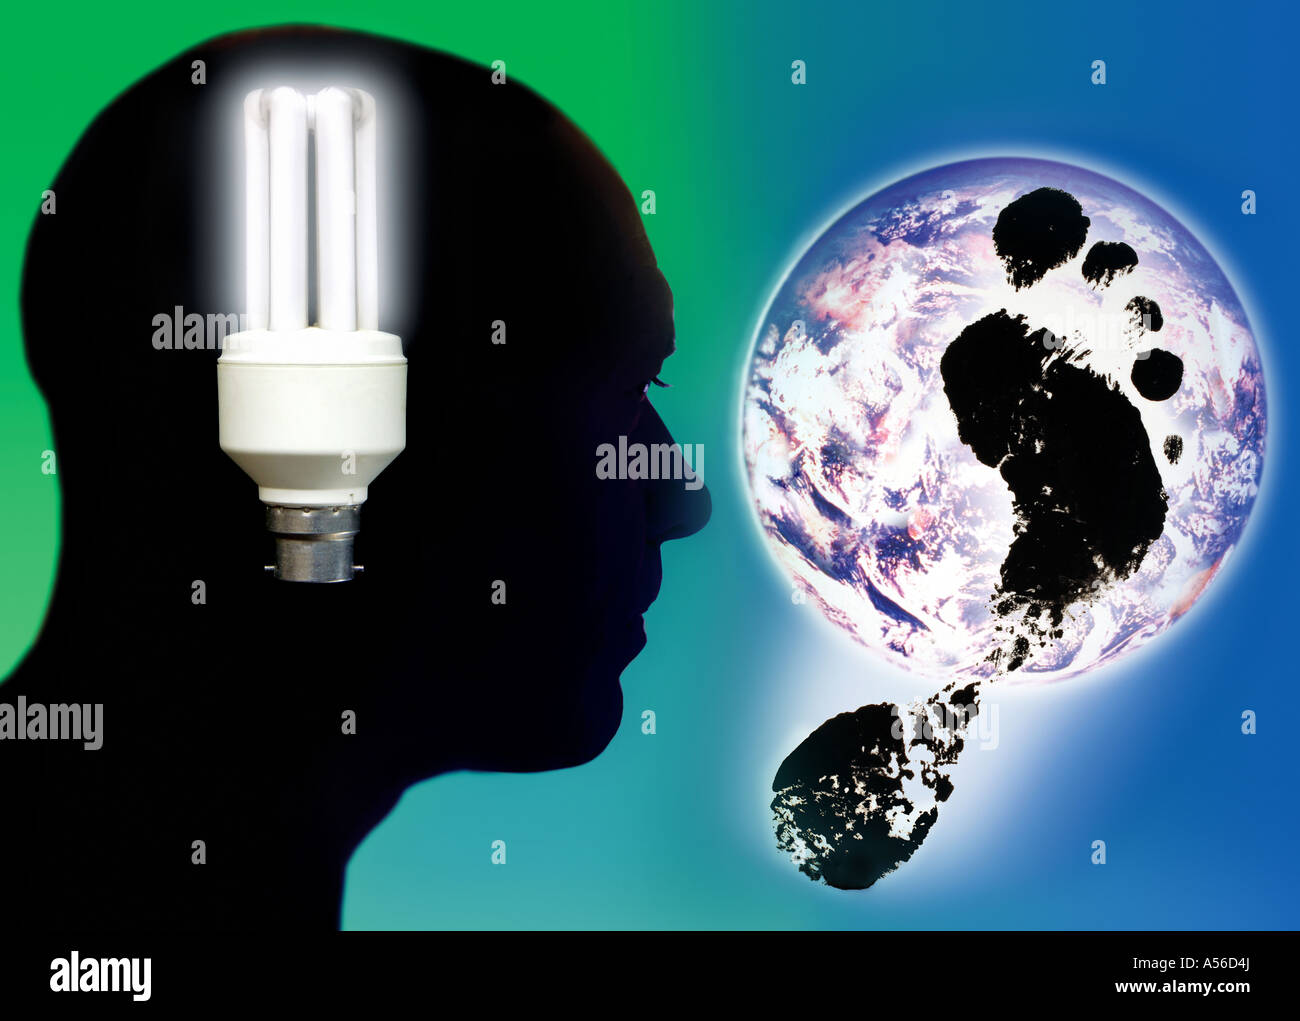 man thinking of carbon footprint and Earth pollution - Stock Image